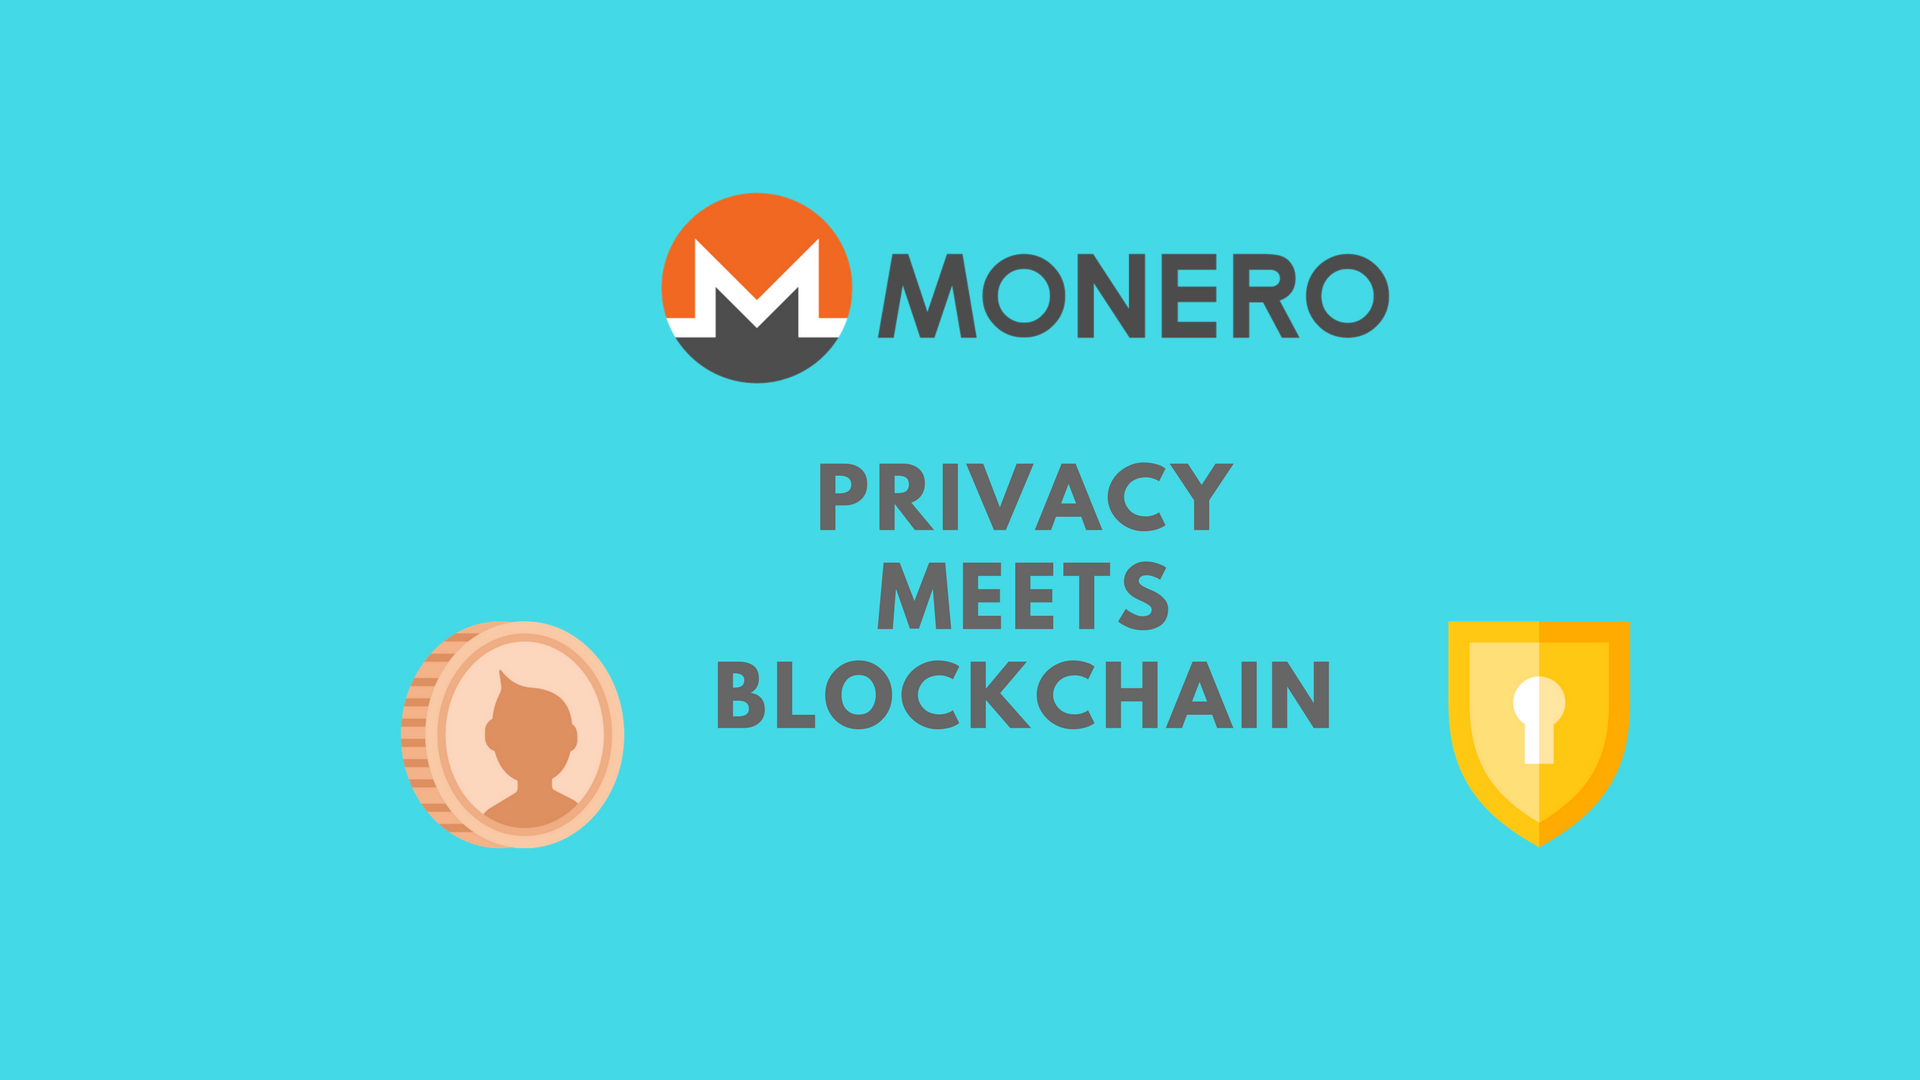 Why Monero? - Privacy Focused Cryptocurrency